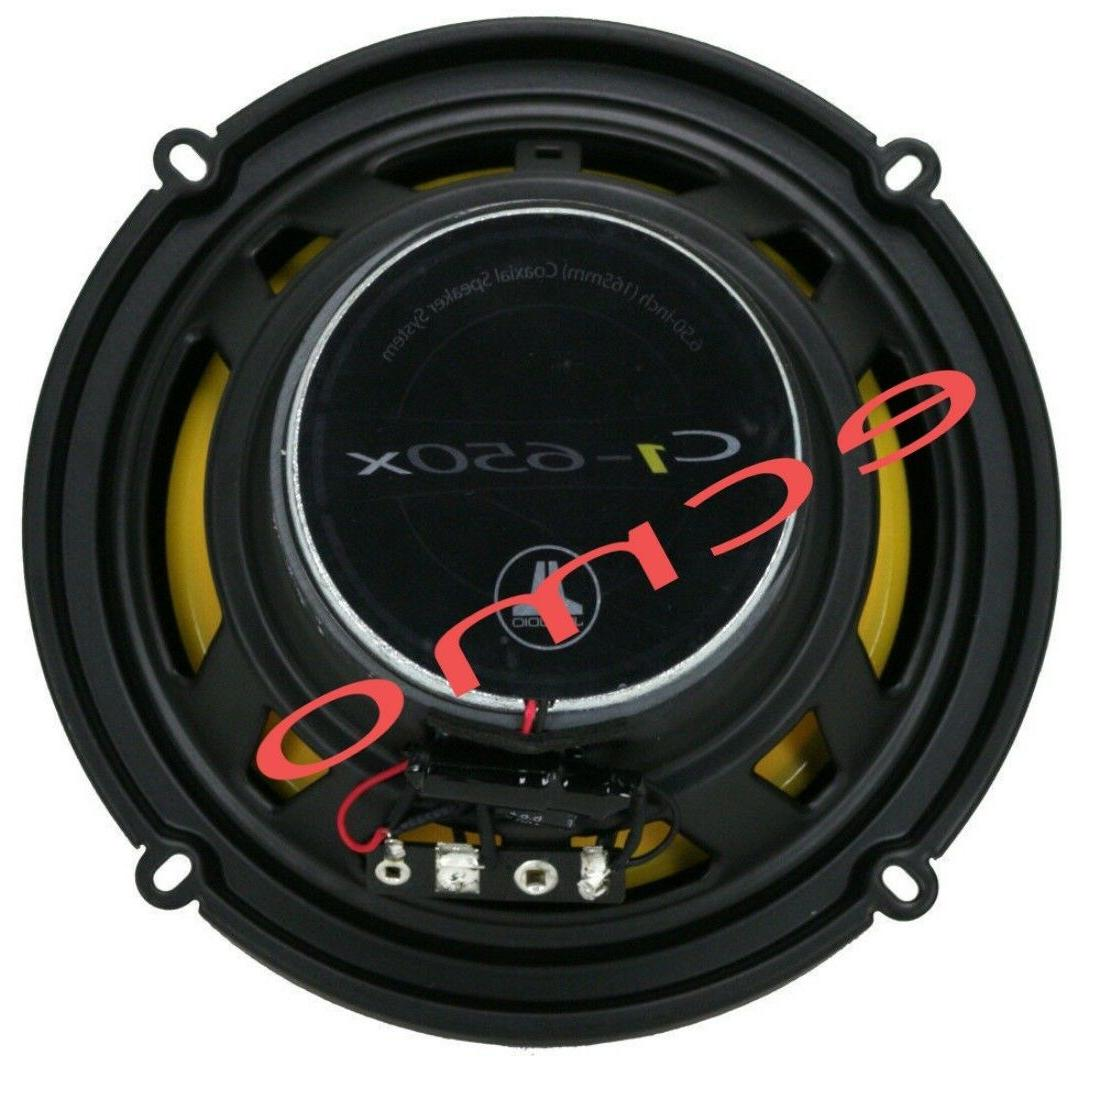 "JL Audio C1-650x C1 Series 6-1/2"" Coaxial Car NEW"